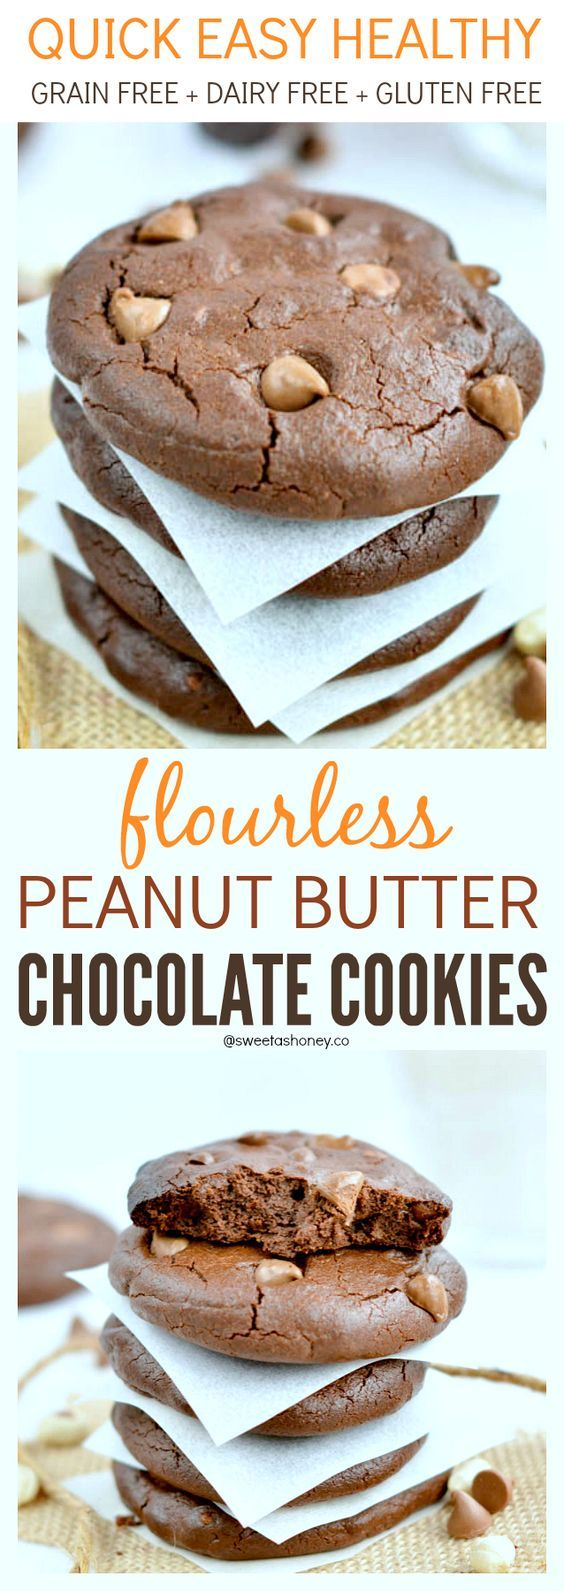 Flourless Peanut Butter Chocolate Cookies Grain Free Paleo